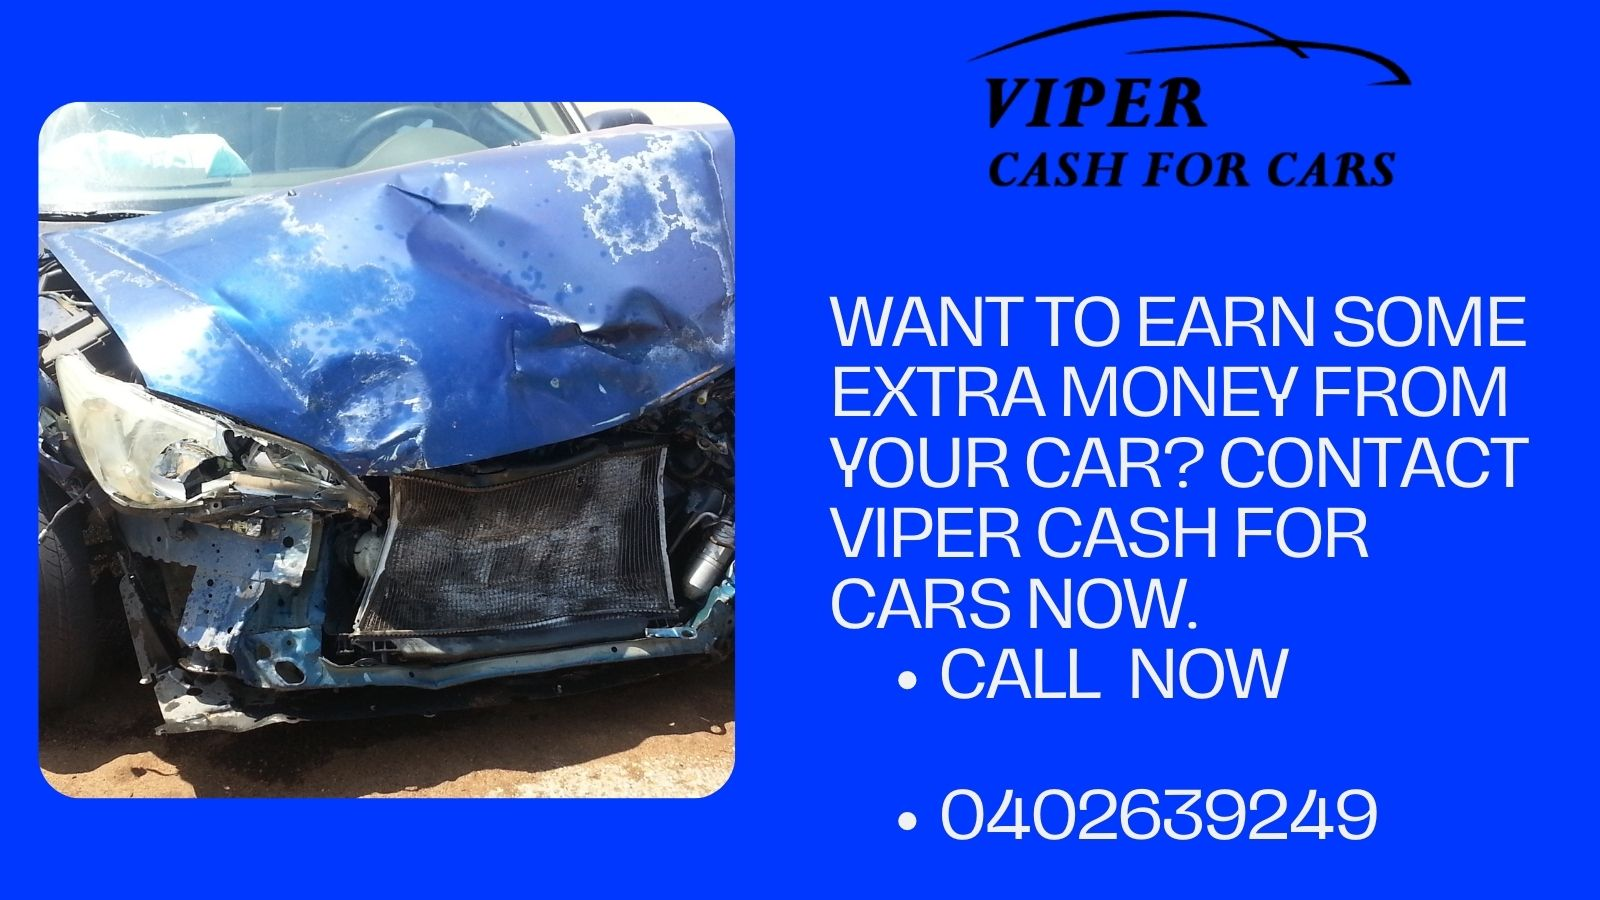 Want to earn some extra money from your car? Contact Viper cash for cars now.